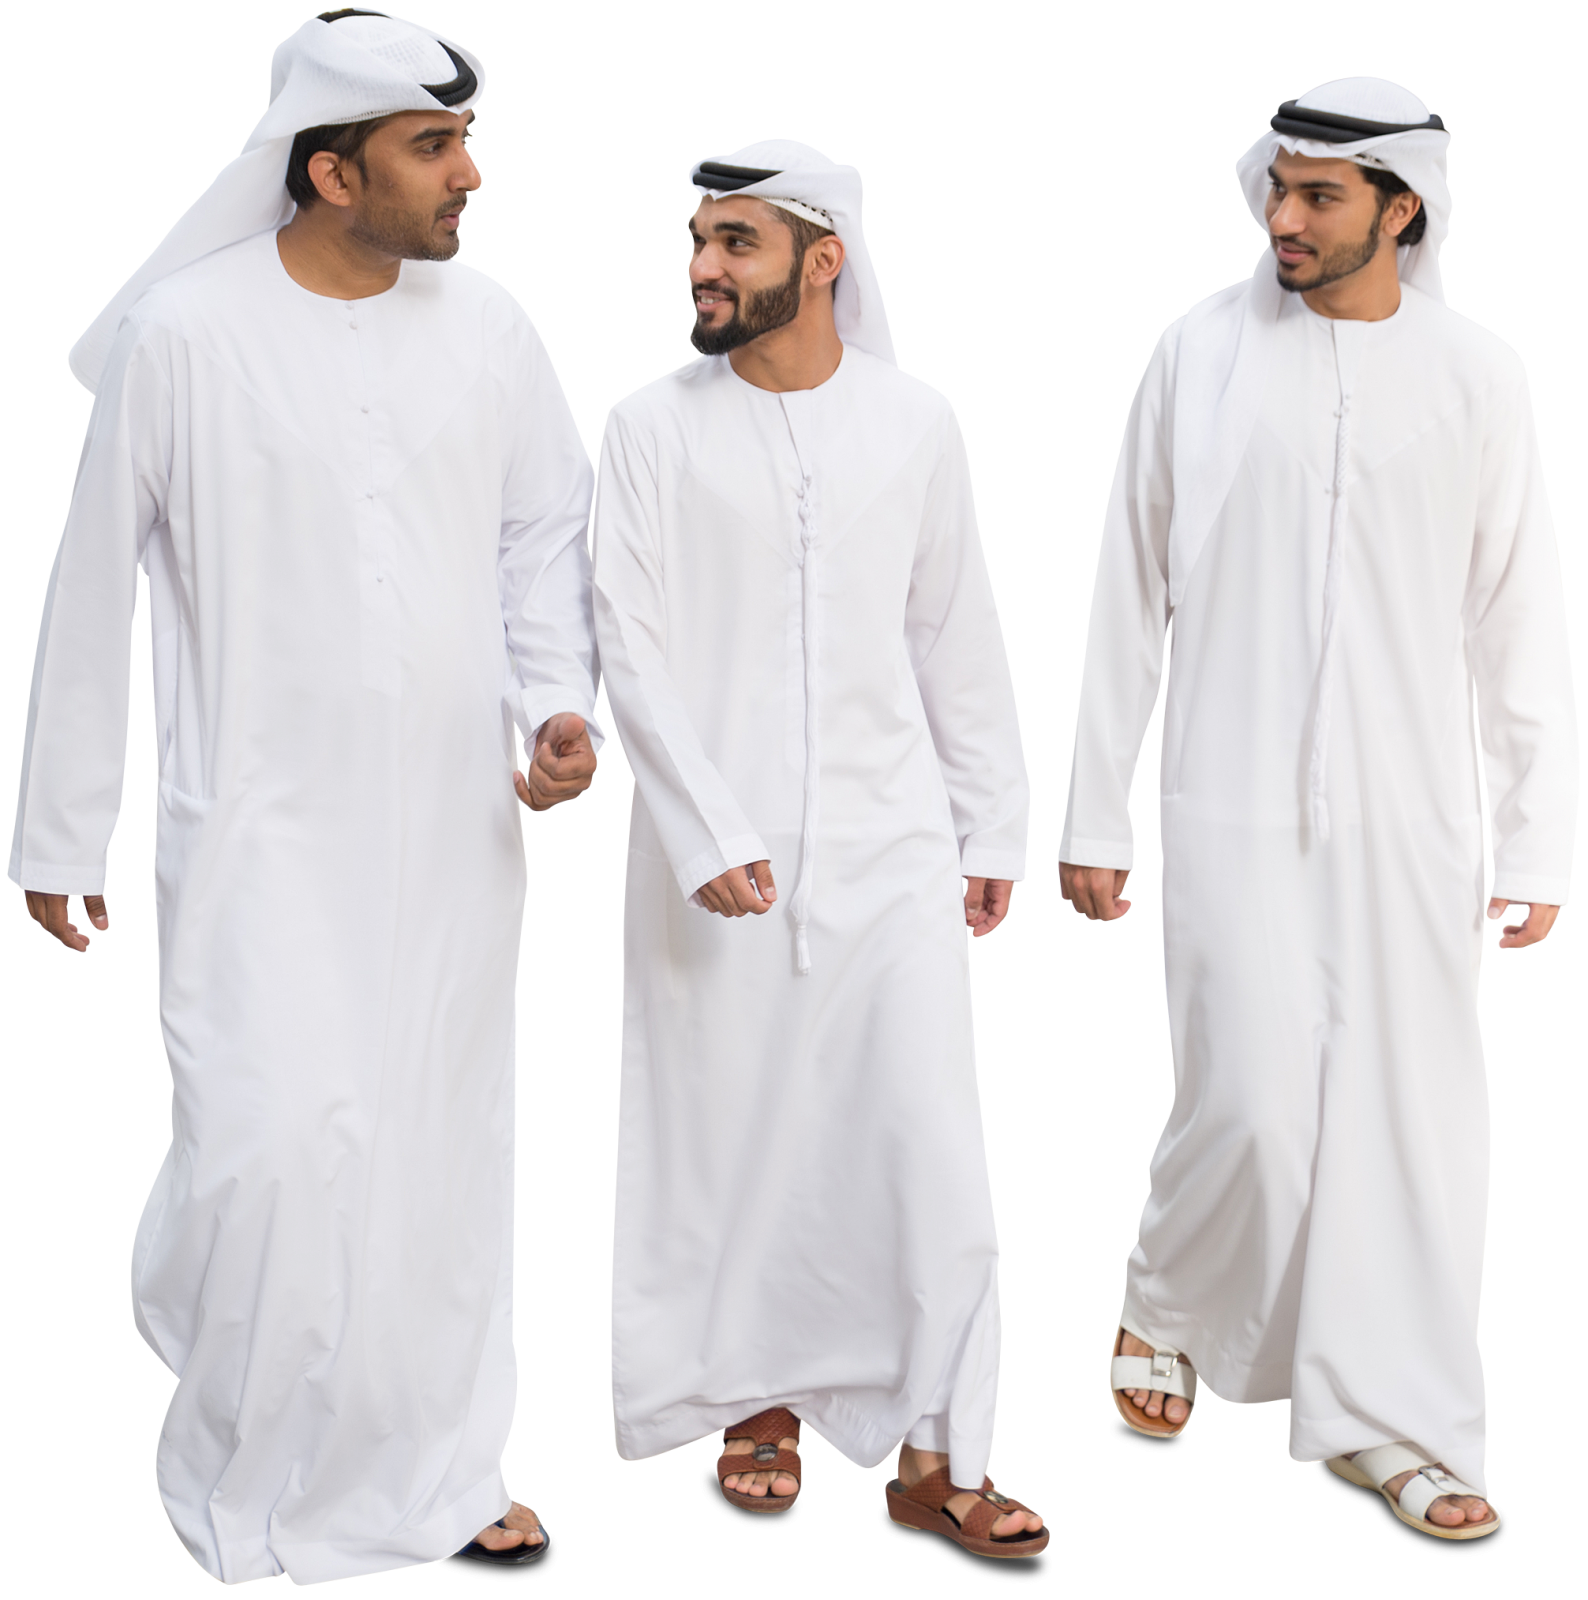 MrCutout Group of Arab Men #mrcutout #styleinspiration #archilovers.